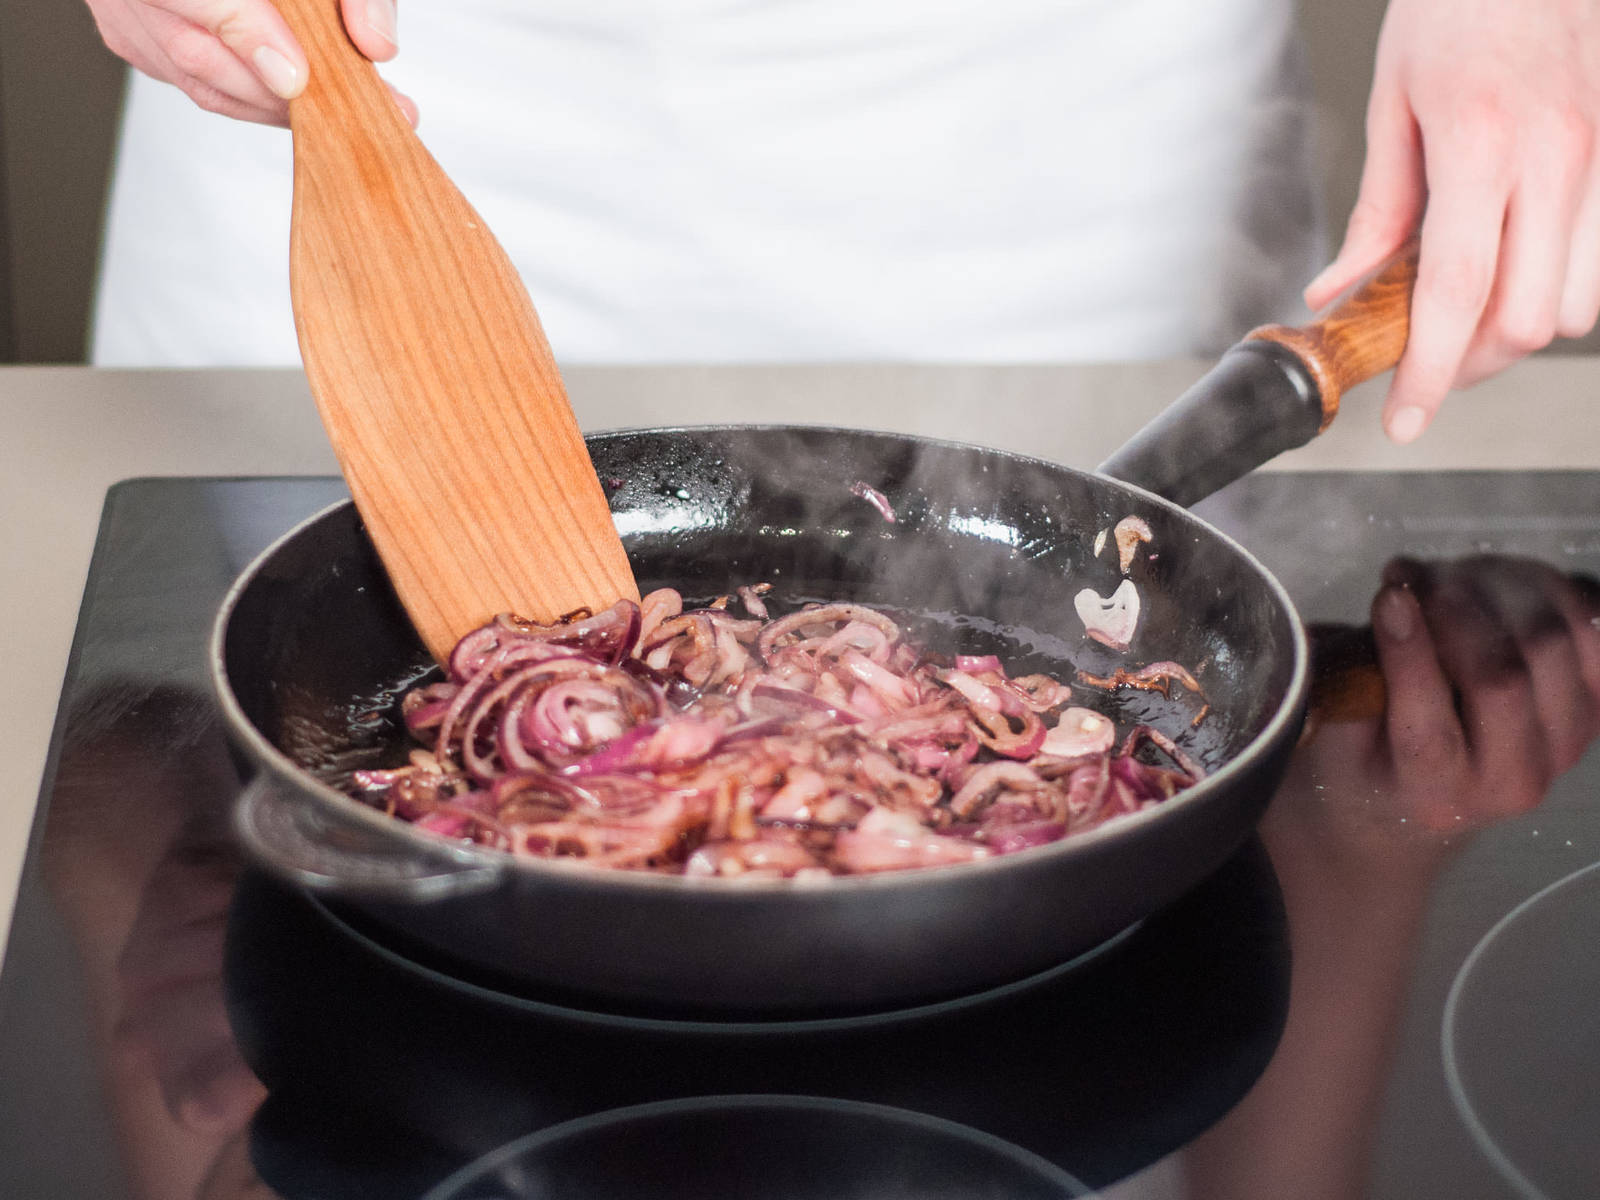 For onion topping, heat vegetable oil in a frying pan over medium heat. Cook four fifths of the onions until soft and translucent, for approx. 8 – 10 min. Remove from heat and set aside.